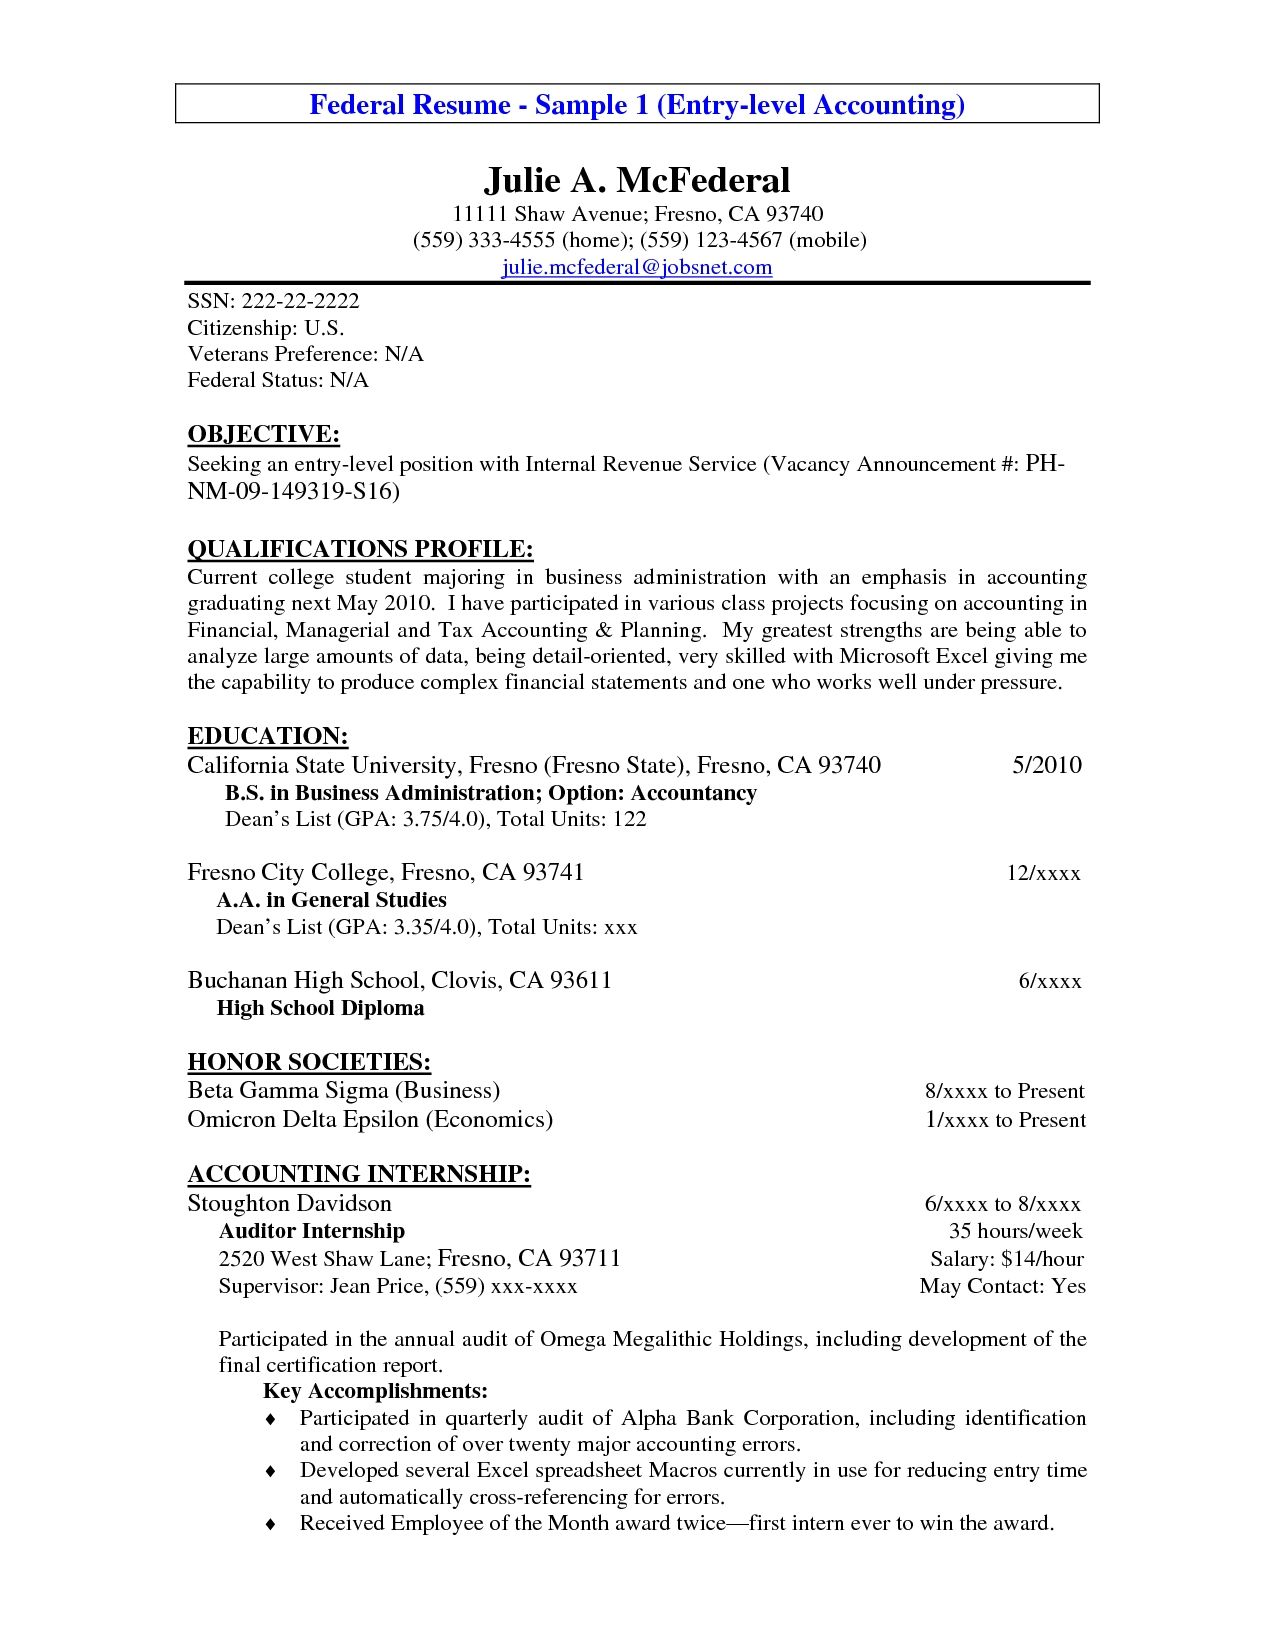 Career Builder Resume Templates Entry Level Resume Example Entry Level Accounting Resume Sample